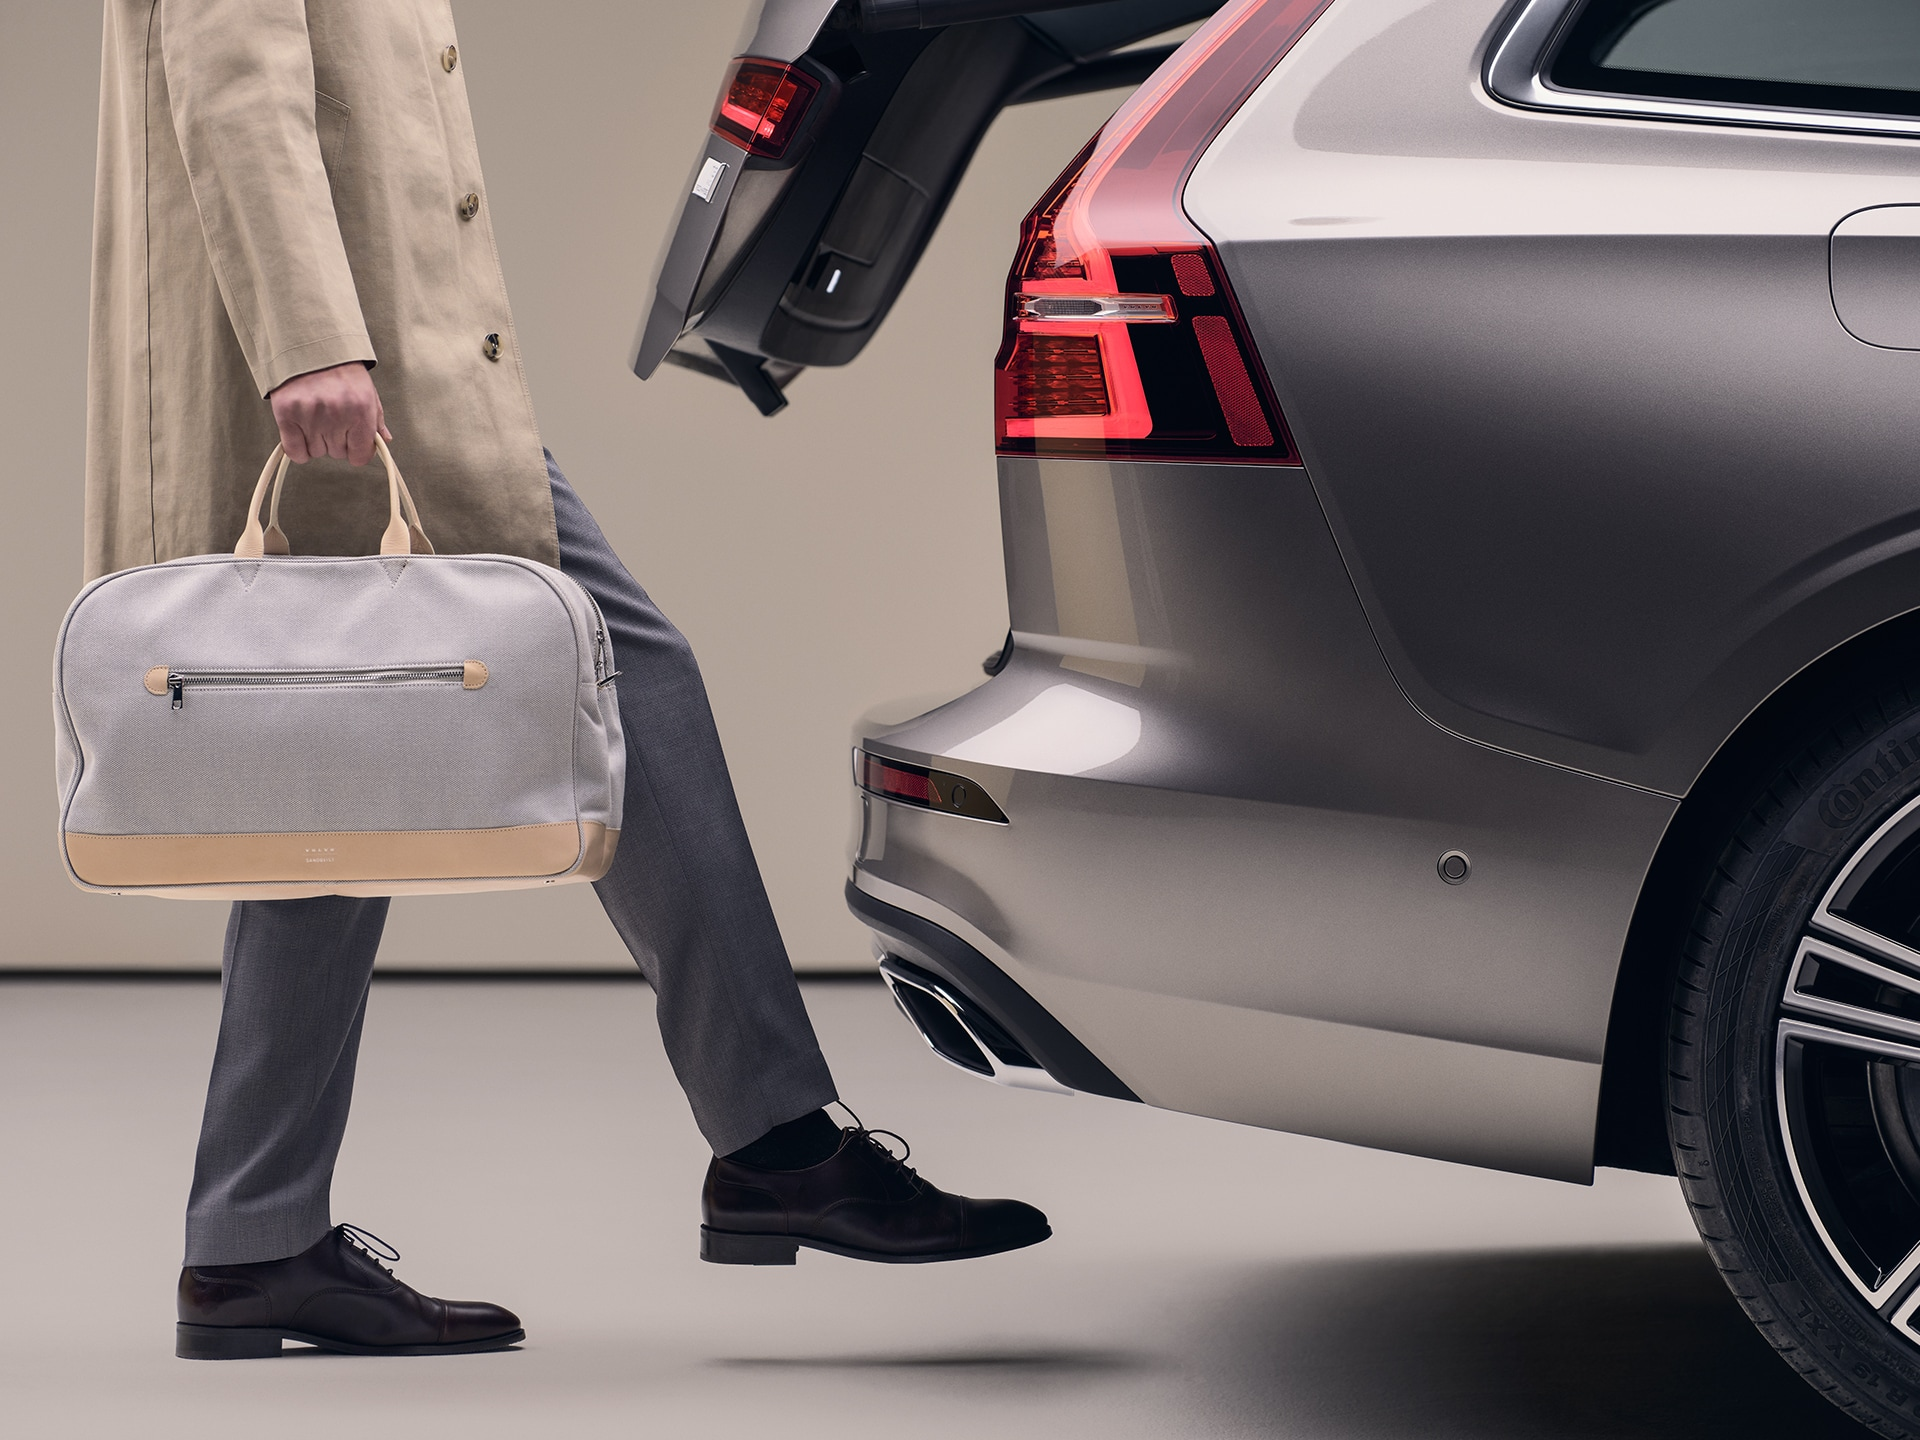 A man with a sports bag in his hand, moving his foot under the rear bumper to open the tailgate